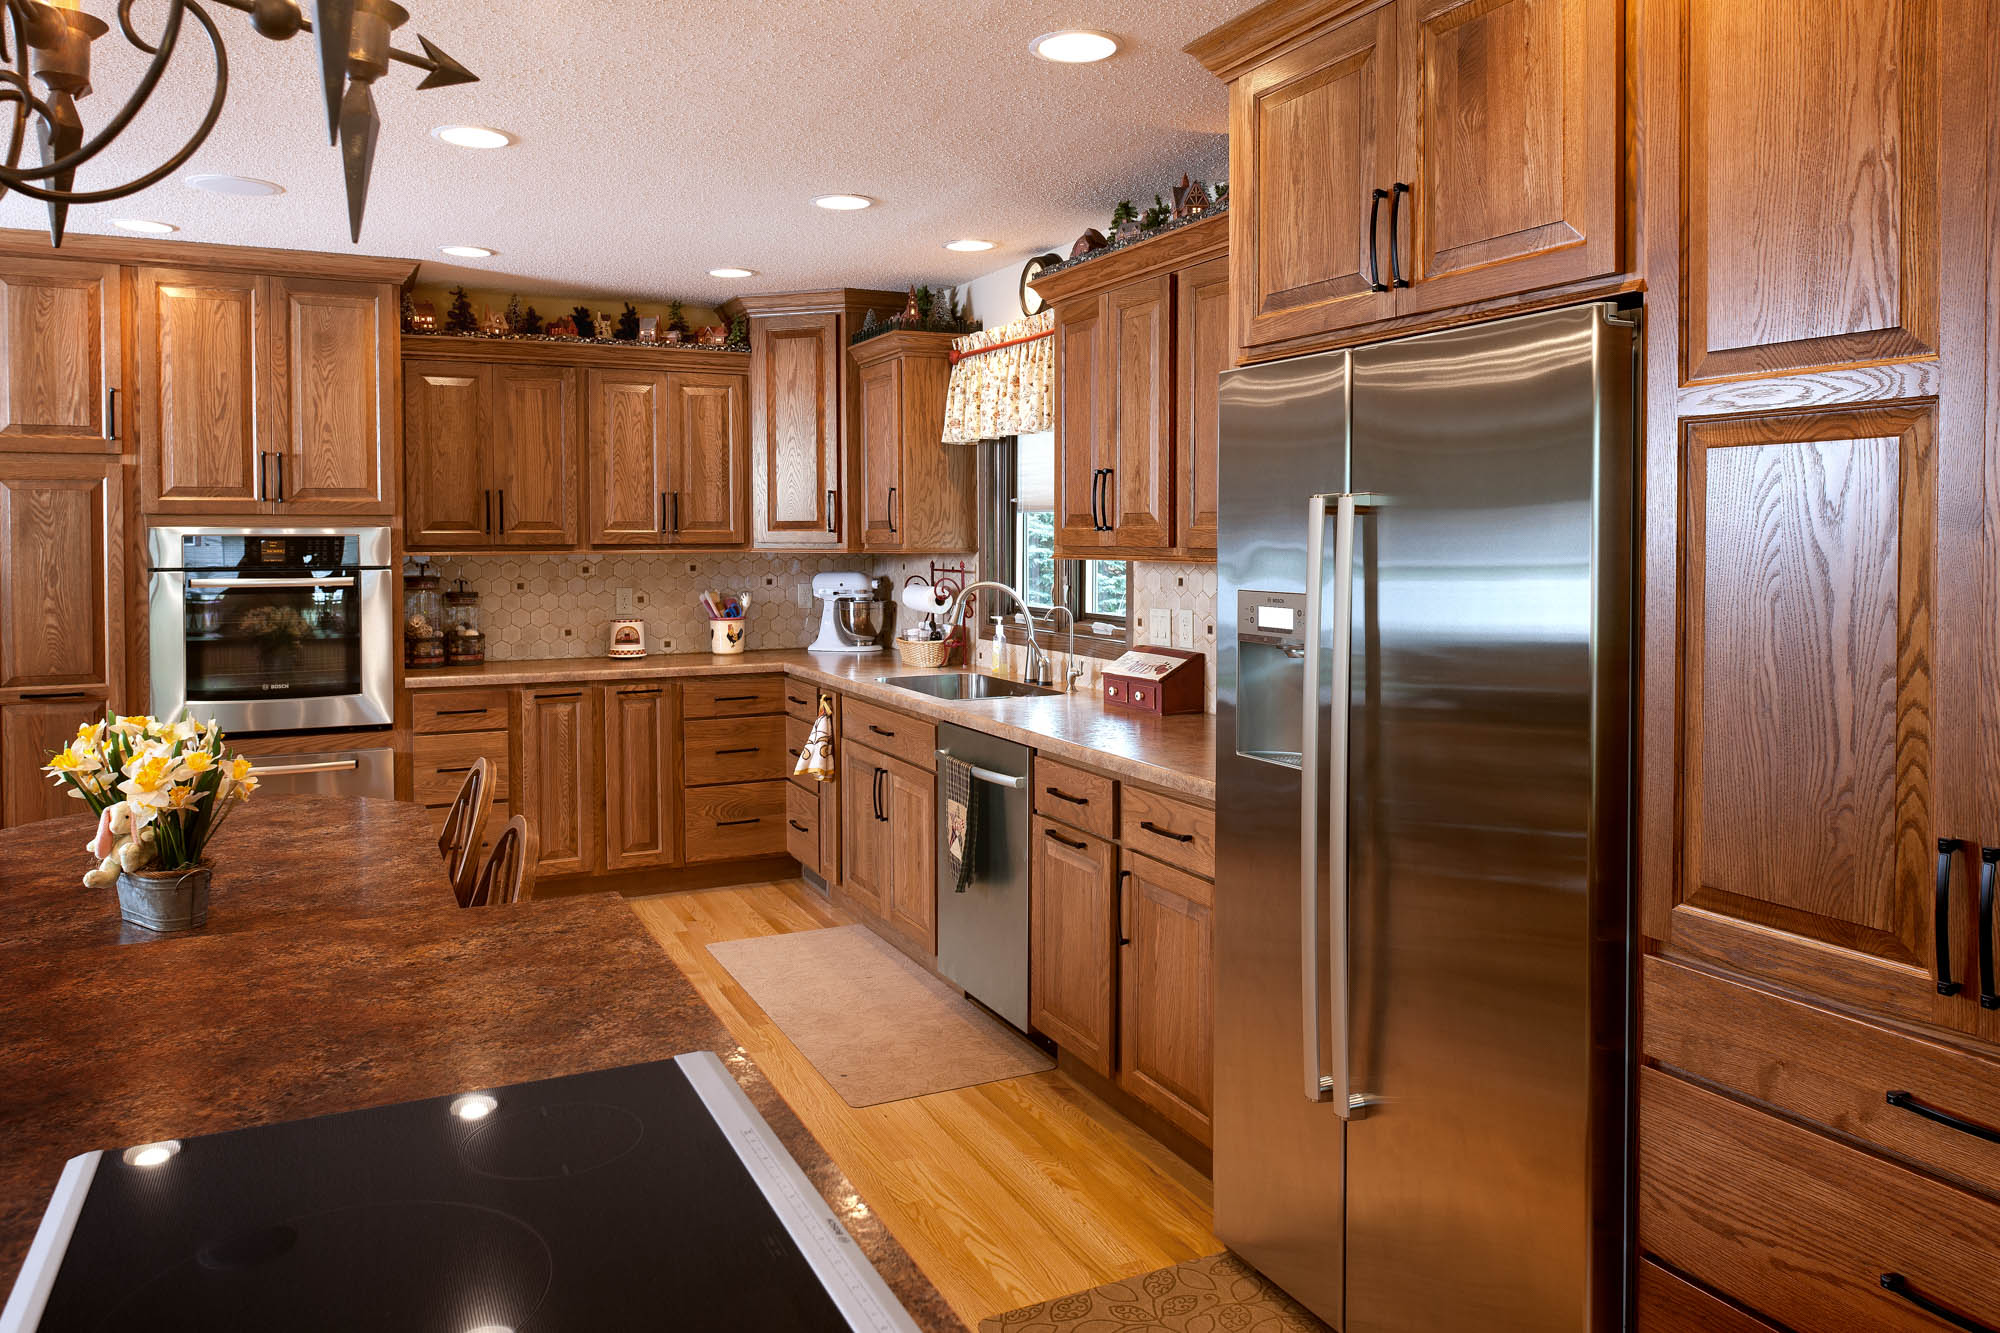 Stained kitchen cabinets in Cognac by Showplace Cabinetry - view 2